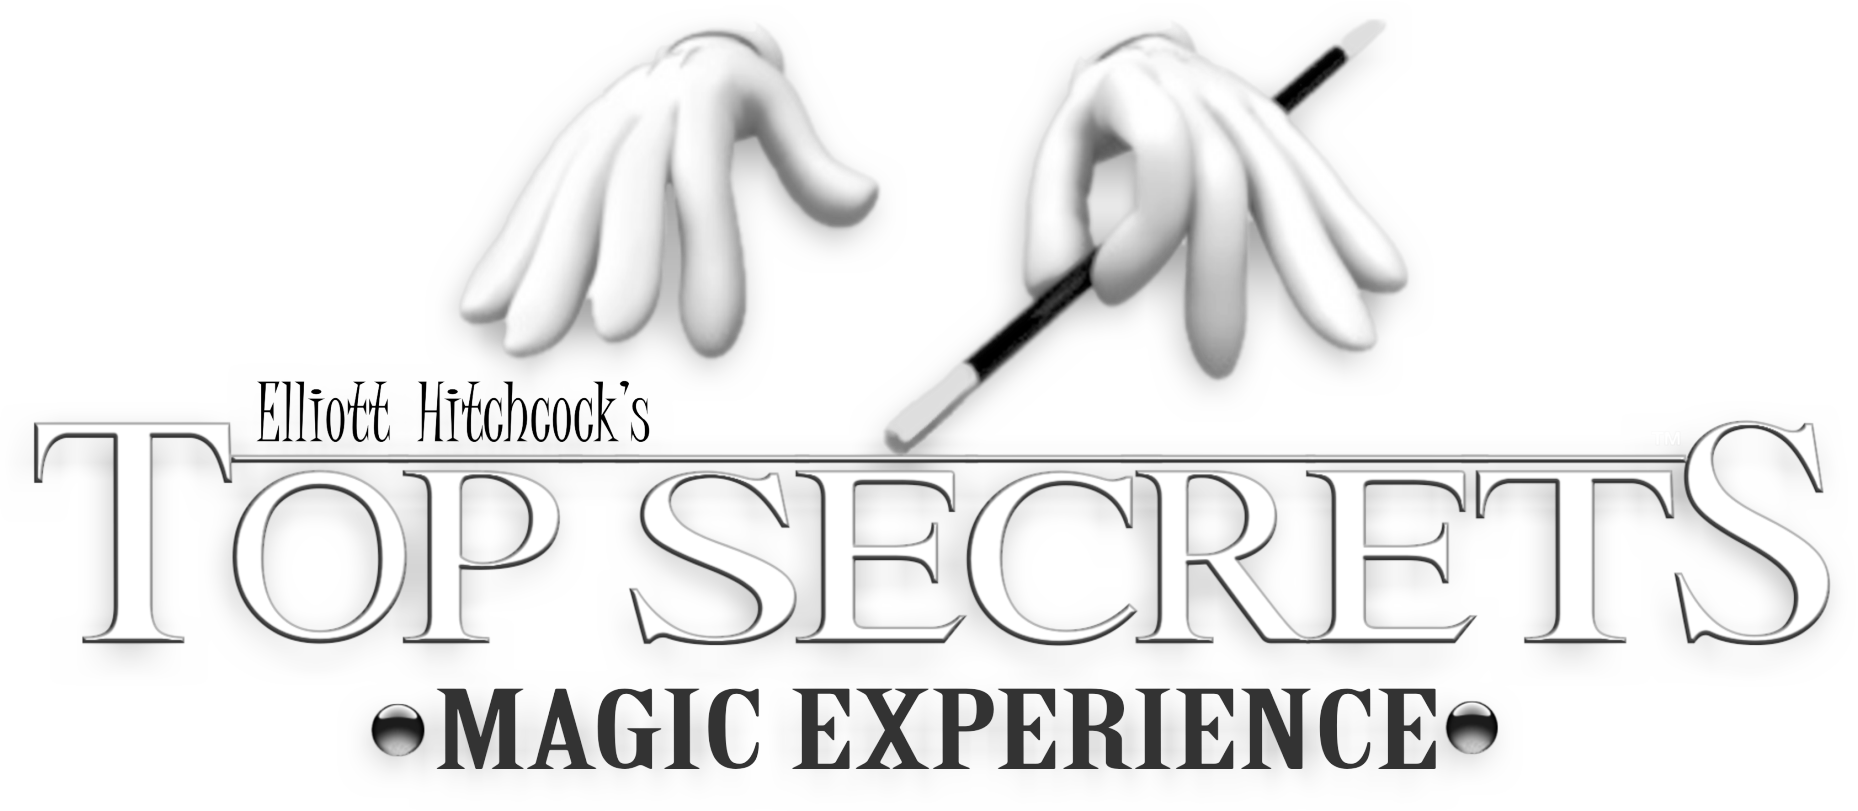 Top Secrets logo bw no background